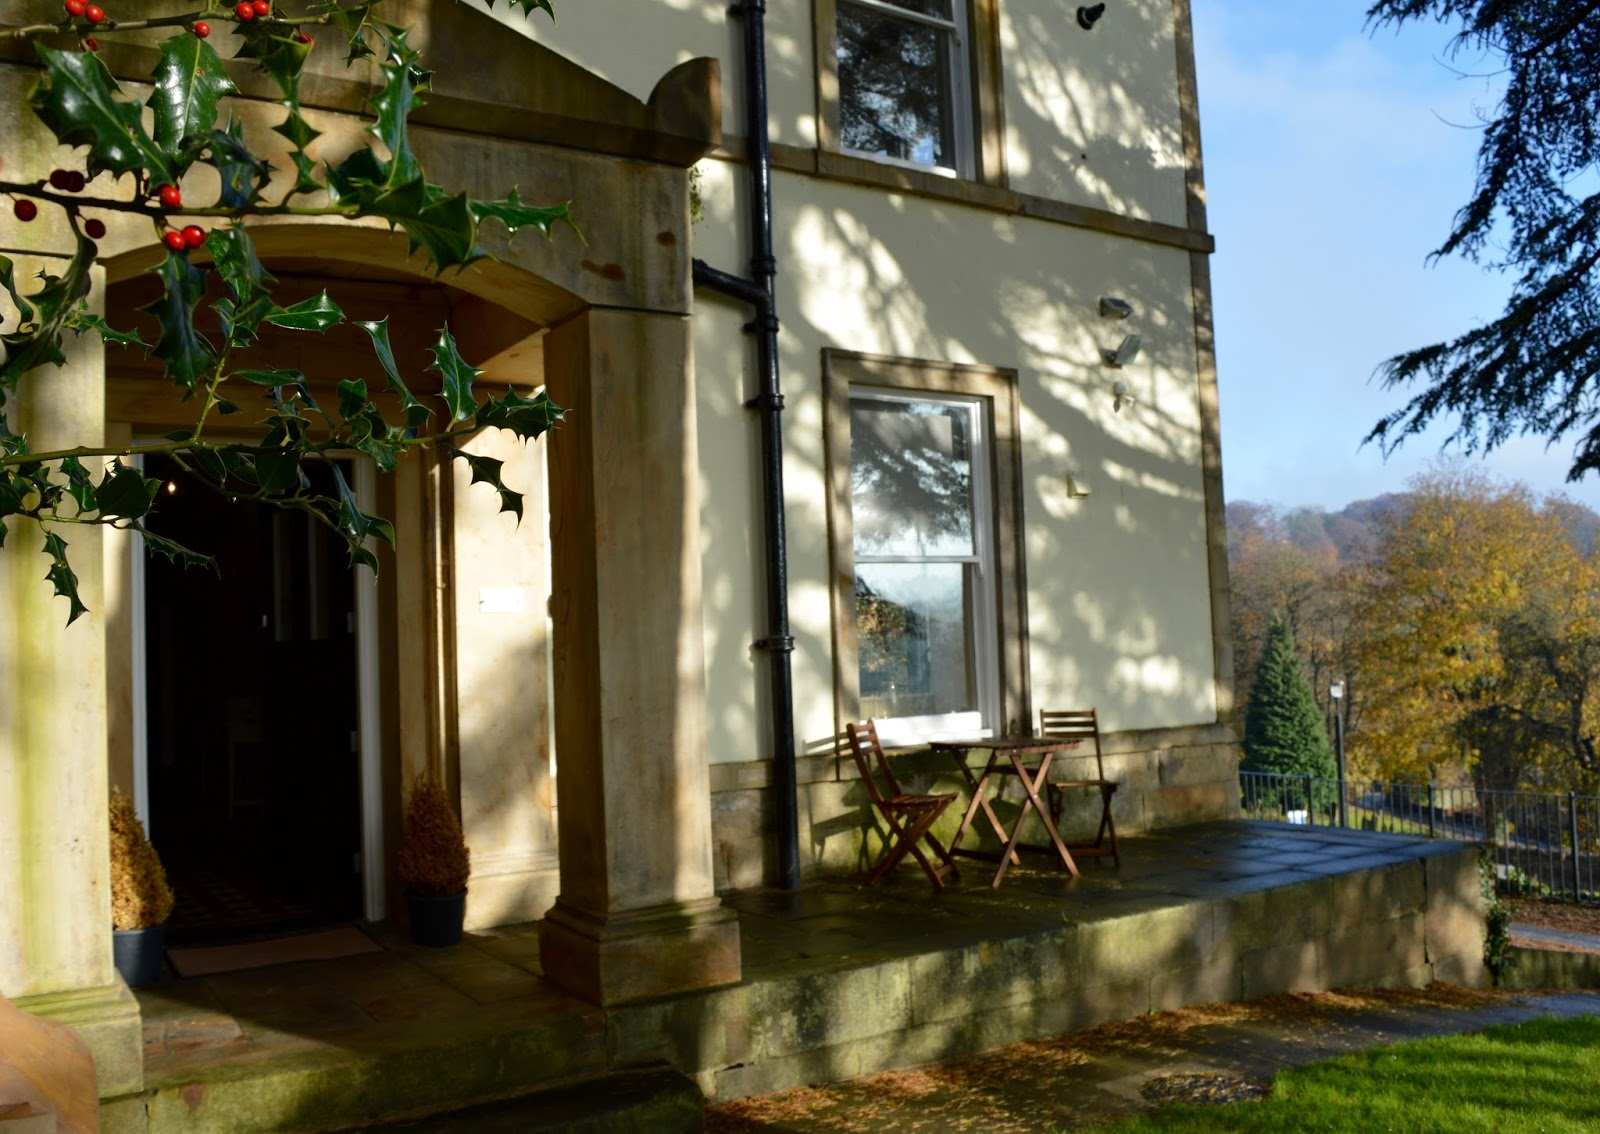 We review One Frenchgate House - A Luxury Serviced 4 Bedroom Apartment in Richmond, North Yorkshire. Available to rent for holidays and short breaks. - entrance hall and view